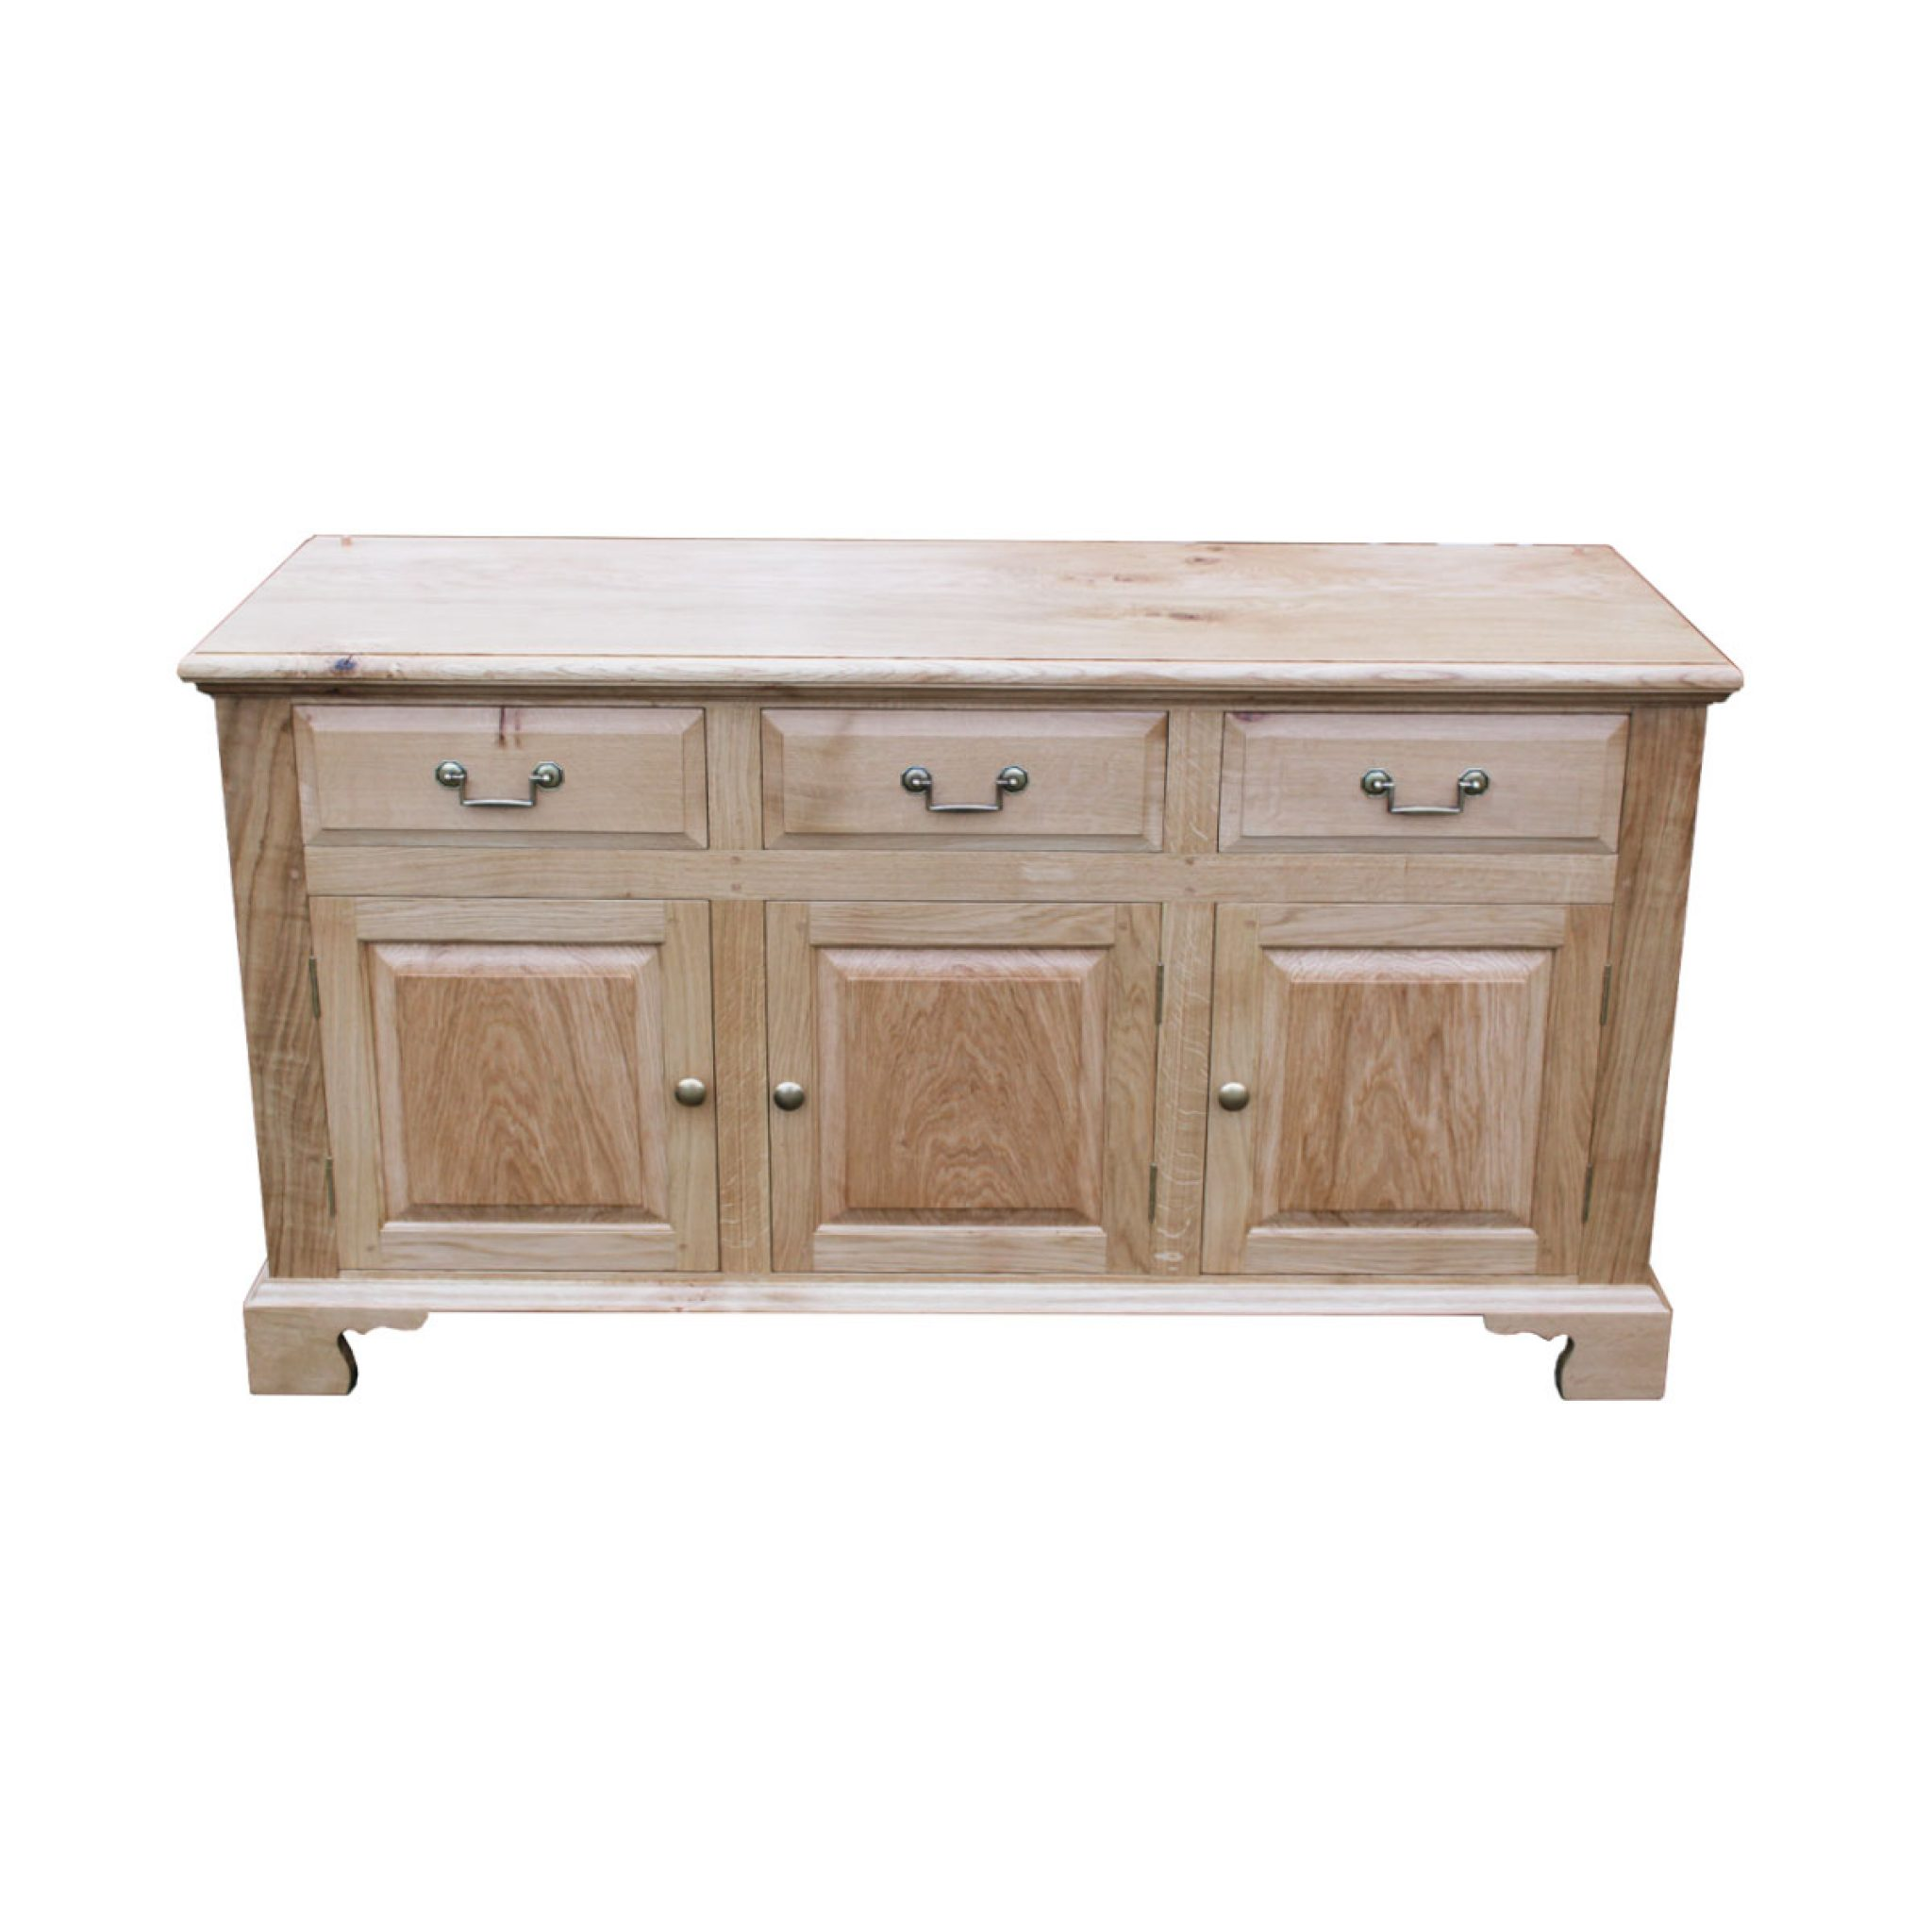 Handmade Oak Furniture Dommoc